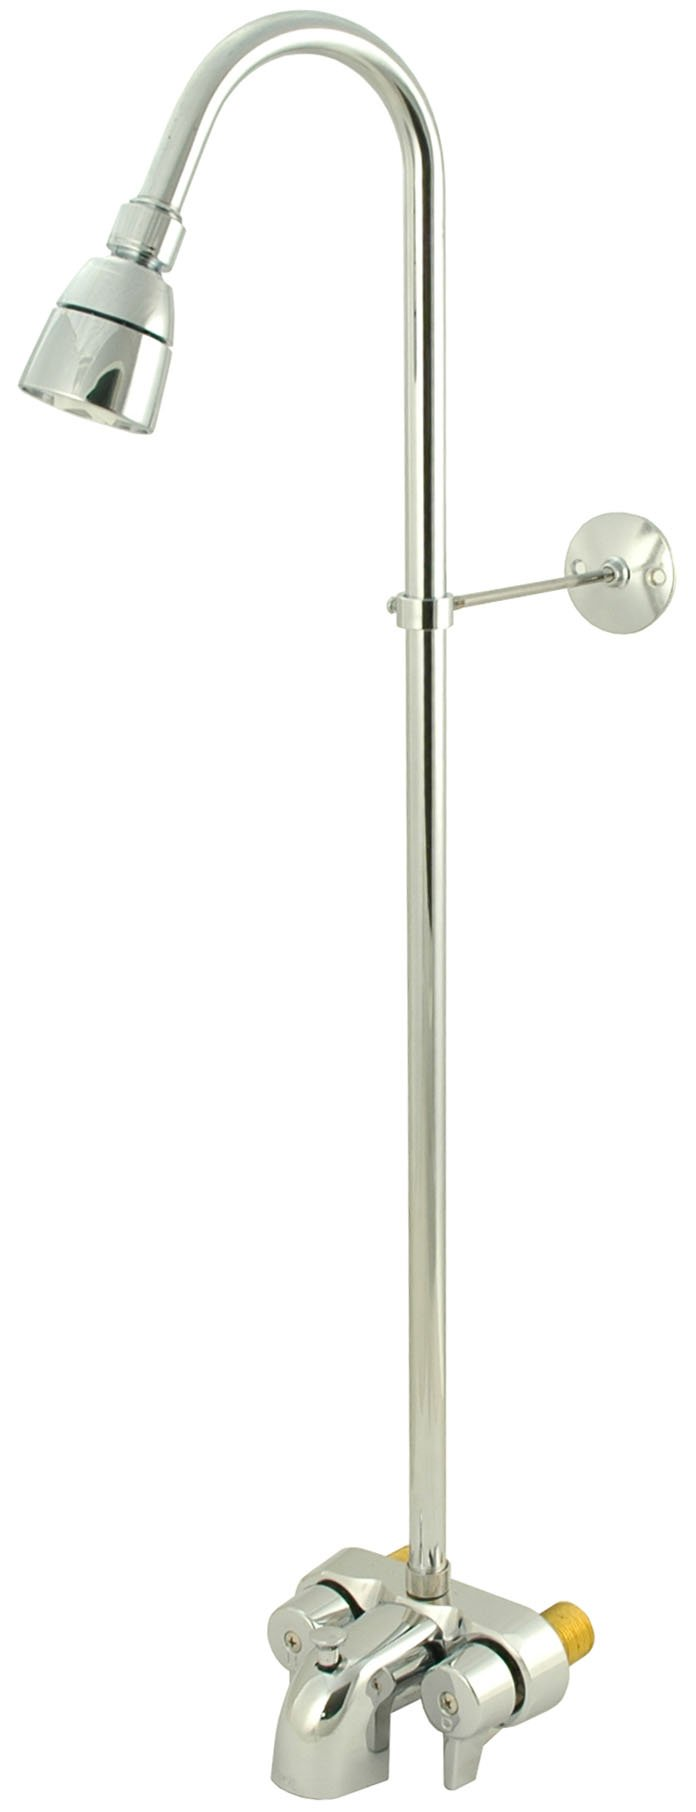 Clawfoot Tub Shower Faucet or Add-on Shower & Bathcock, Brass in Chrome Finish - By Plumb USA 34065 by PlumbUSA